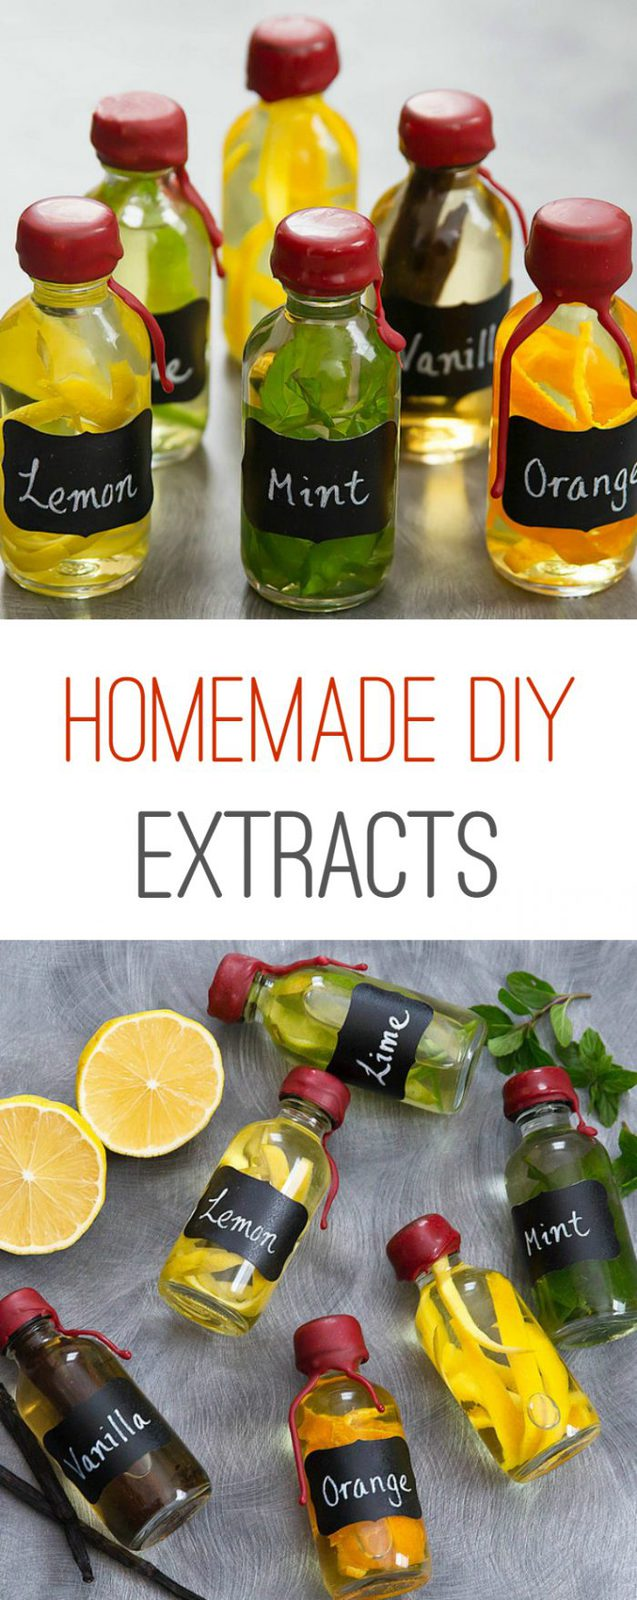 DIY Homemade Extracts